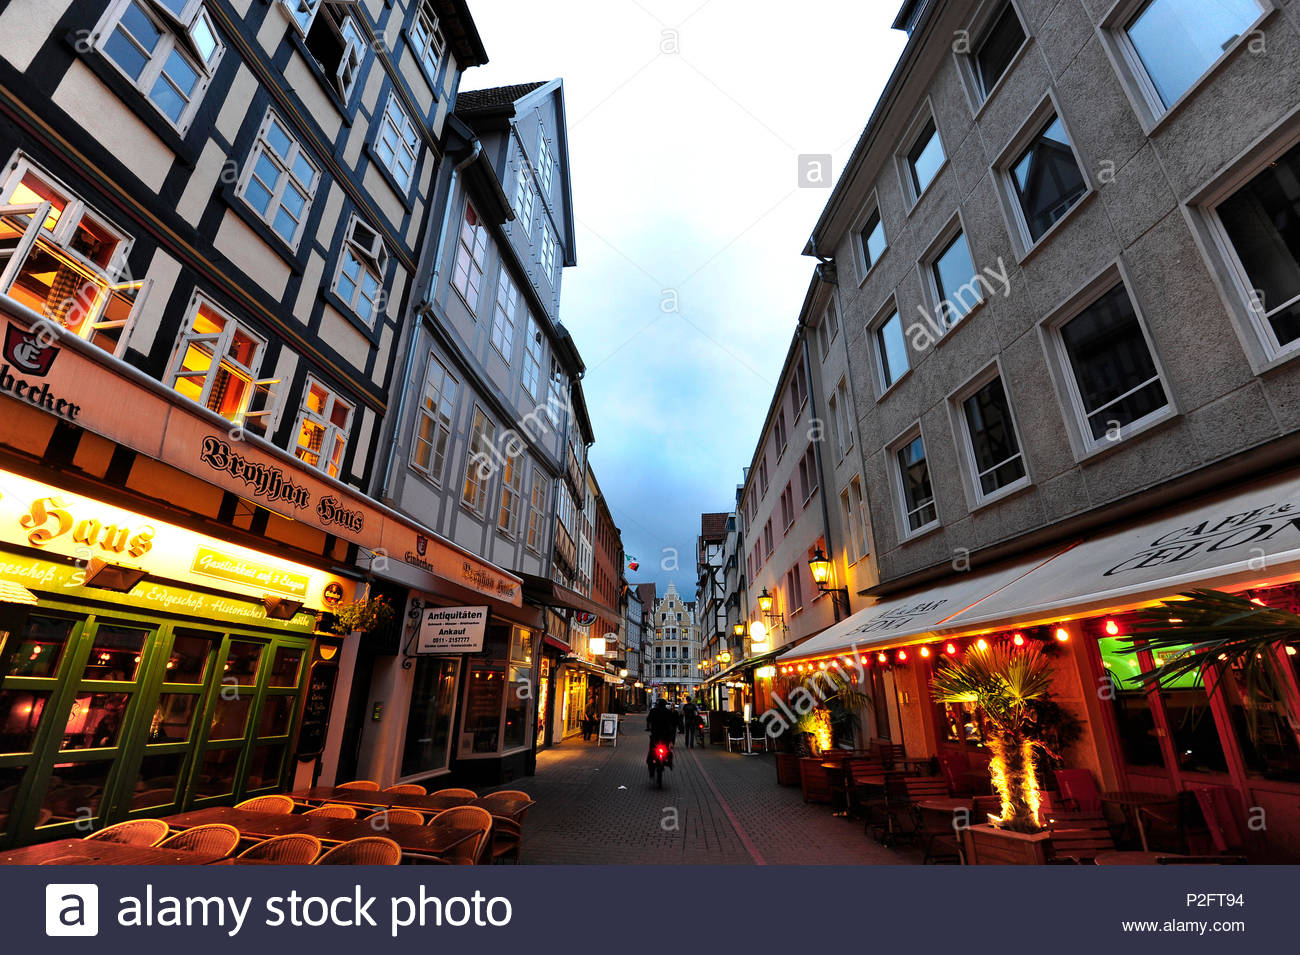 Kramerstrasse in the evening, historic city centre, Hanover, Hannover, Lower Saxony, Germany - Stock Image